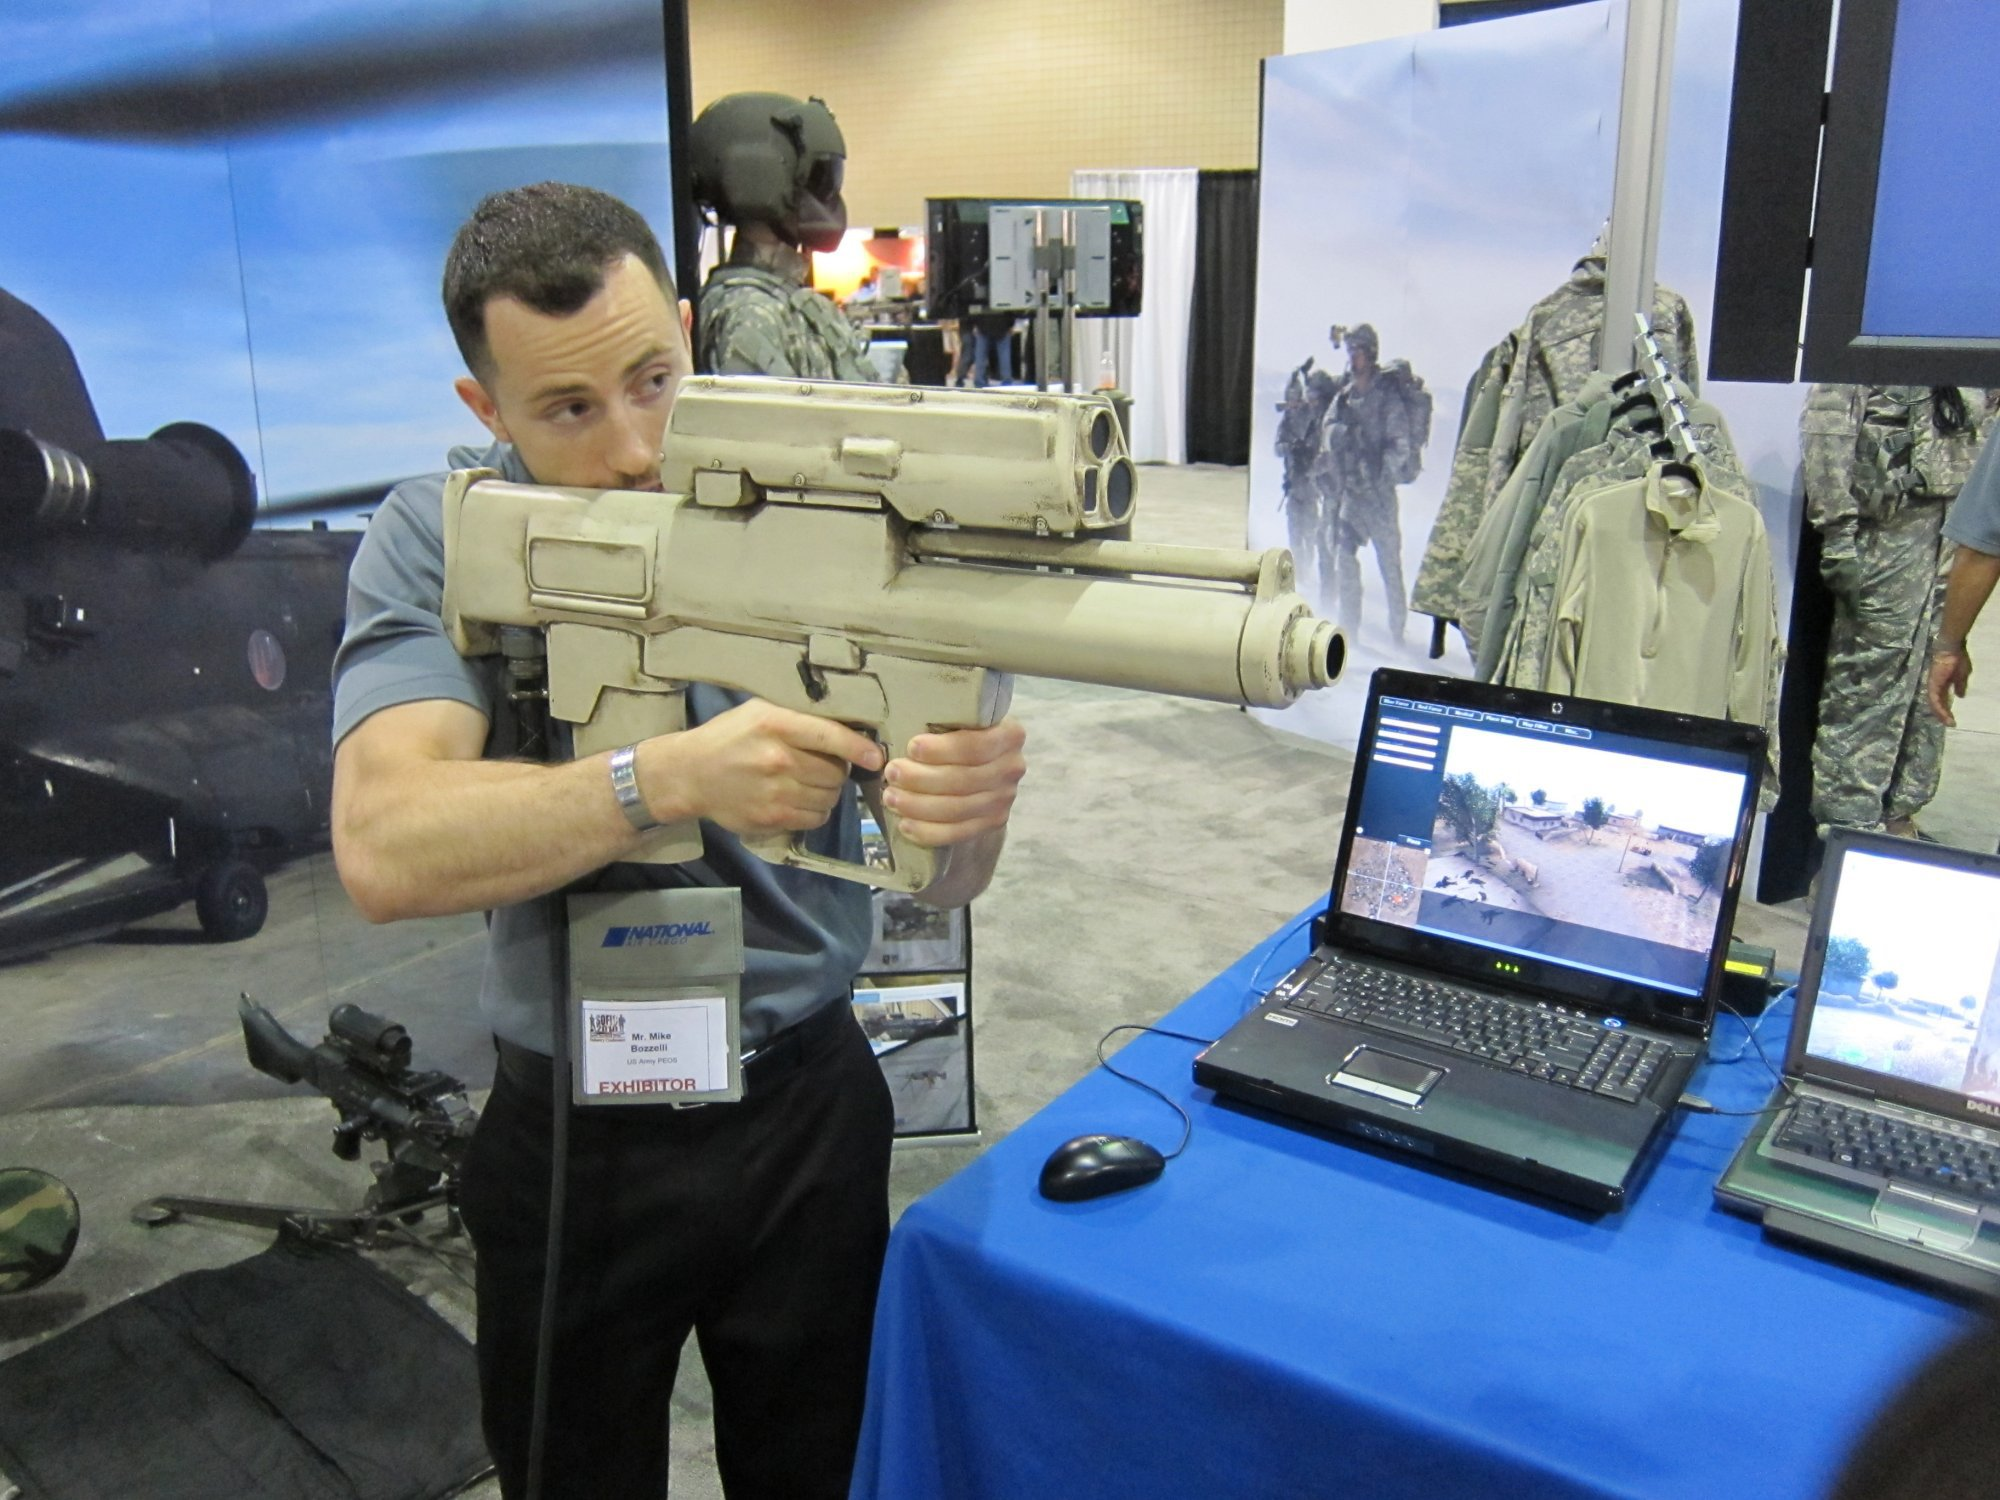 ATK_XM25_Auto_25mm_Grenade_Launcher_Weapon_Simulator_System_SOFIC_2010_3